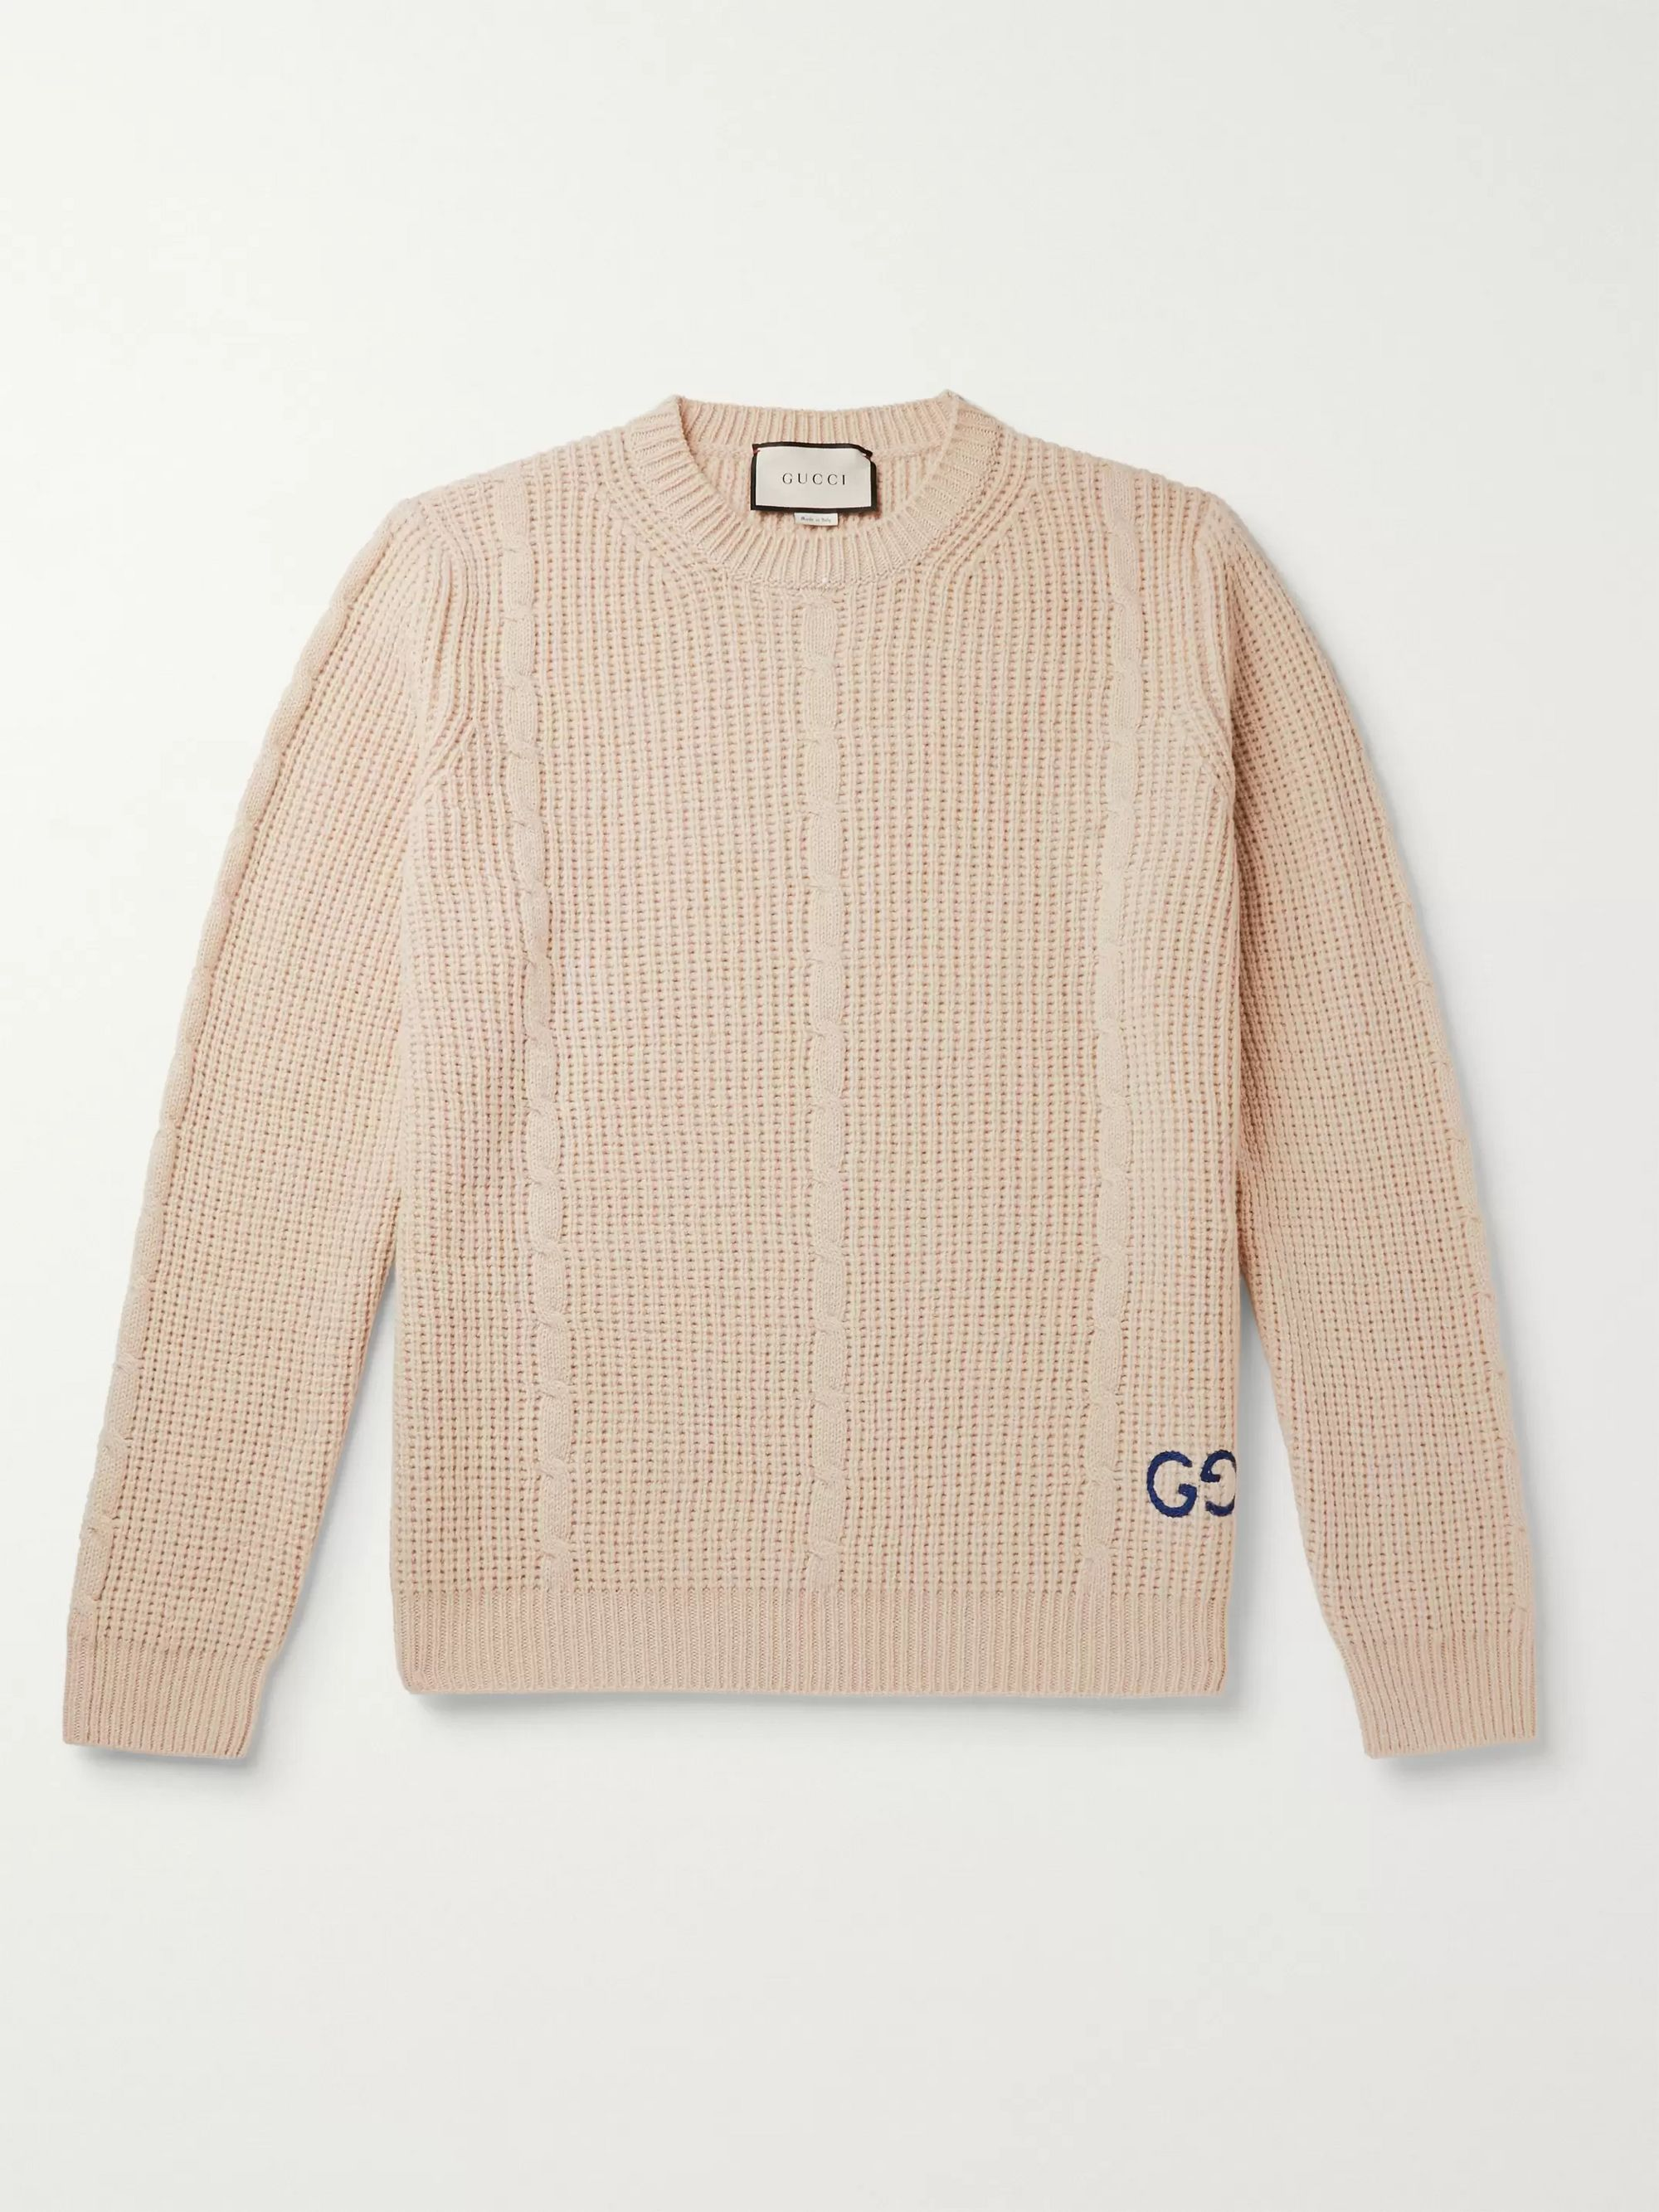 구찌 Gucci Beige Logo-Embroidered Cable-Knit Wool-Blend Sweater,Beige